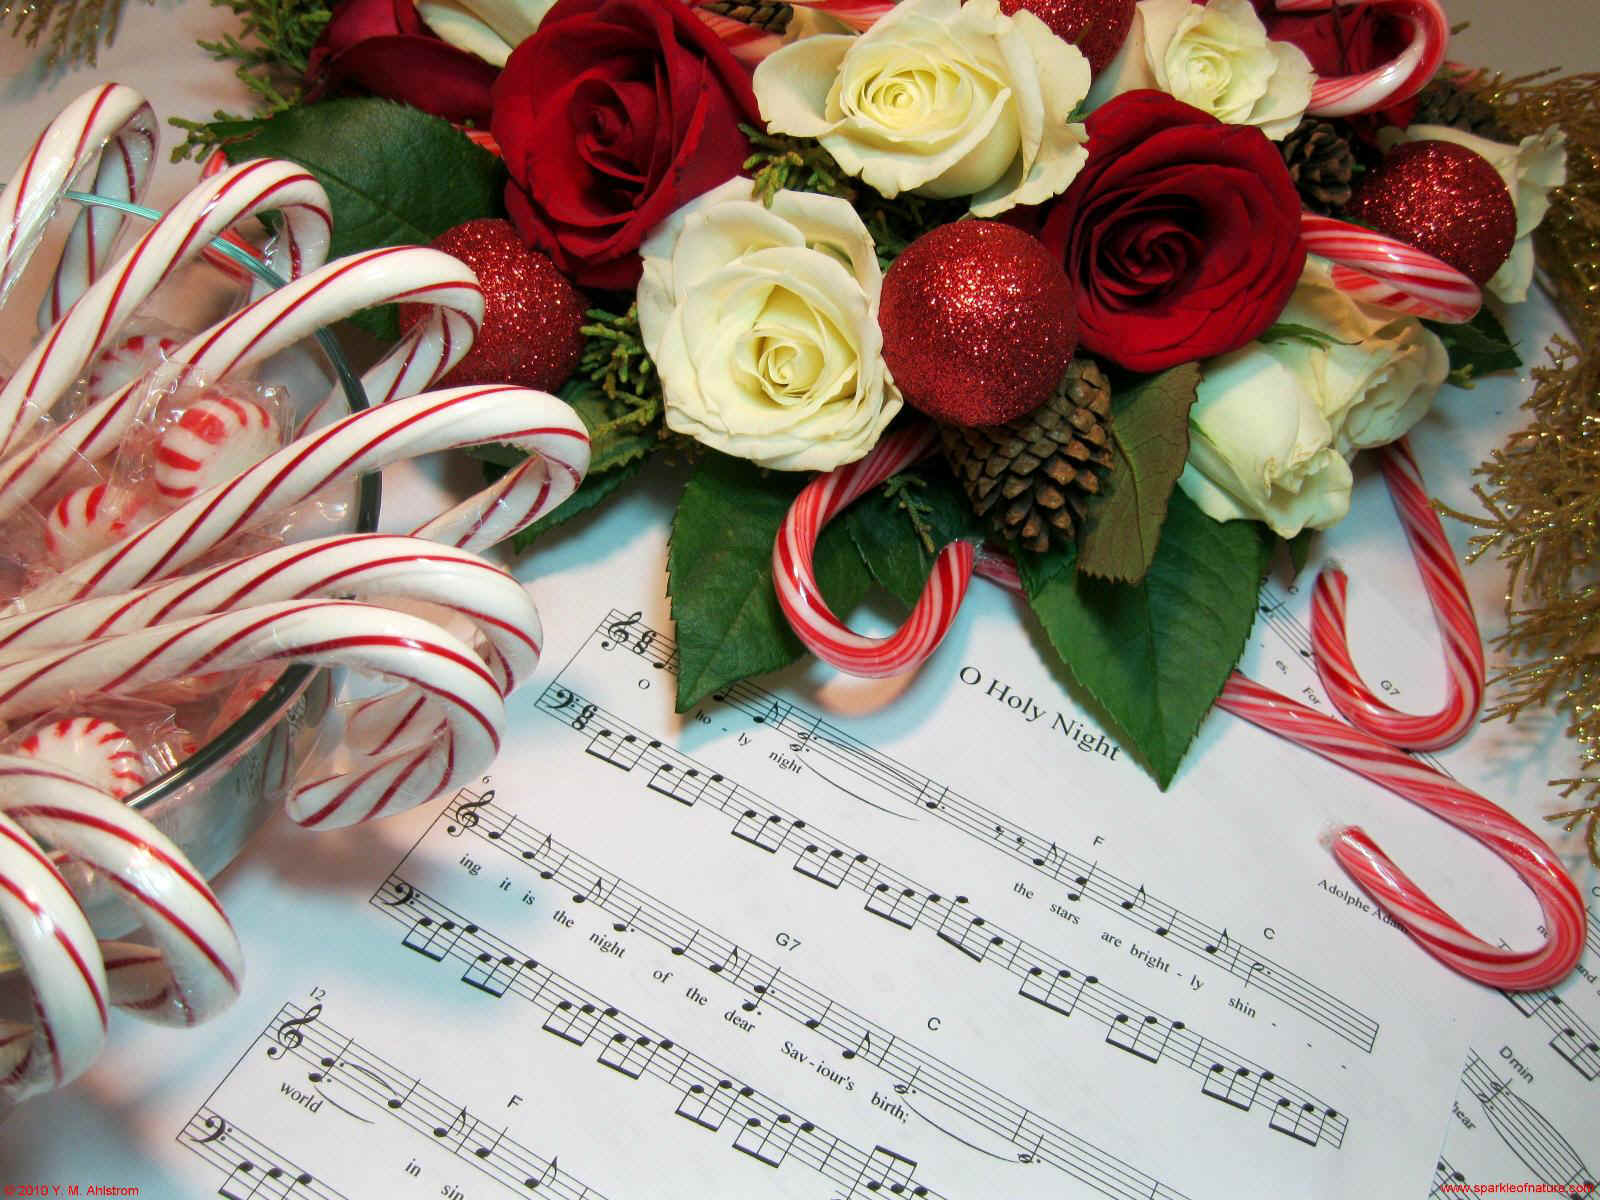 17046 christmas music 1600x1200.jpg (319960 bytes)